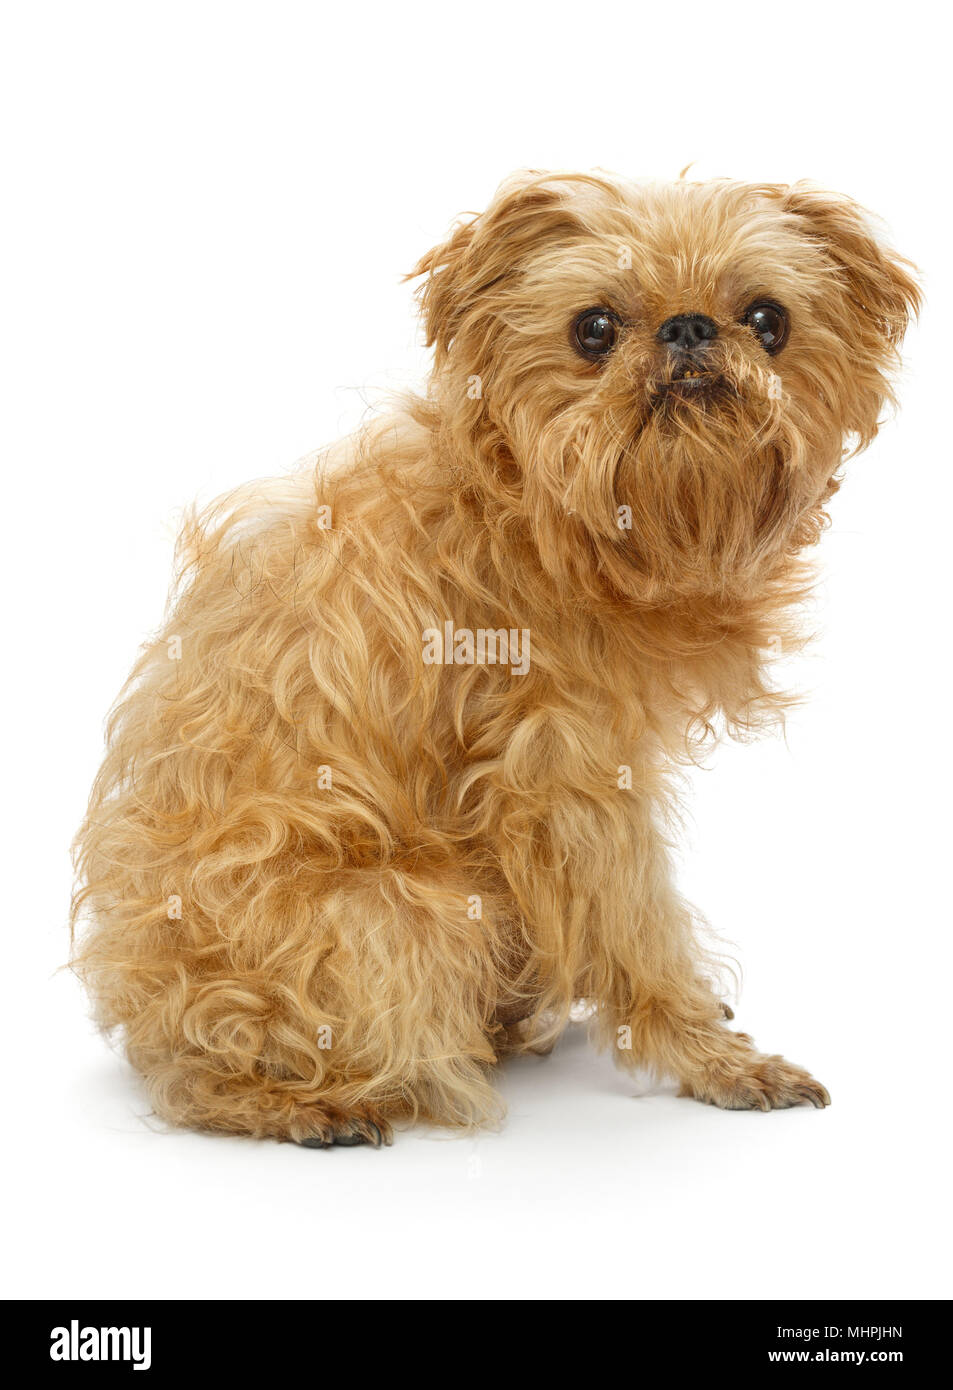 Shaggy Dog Breed Brussels Griffon Before Shearing Isolated On White